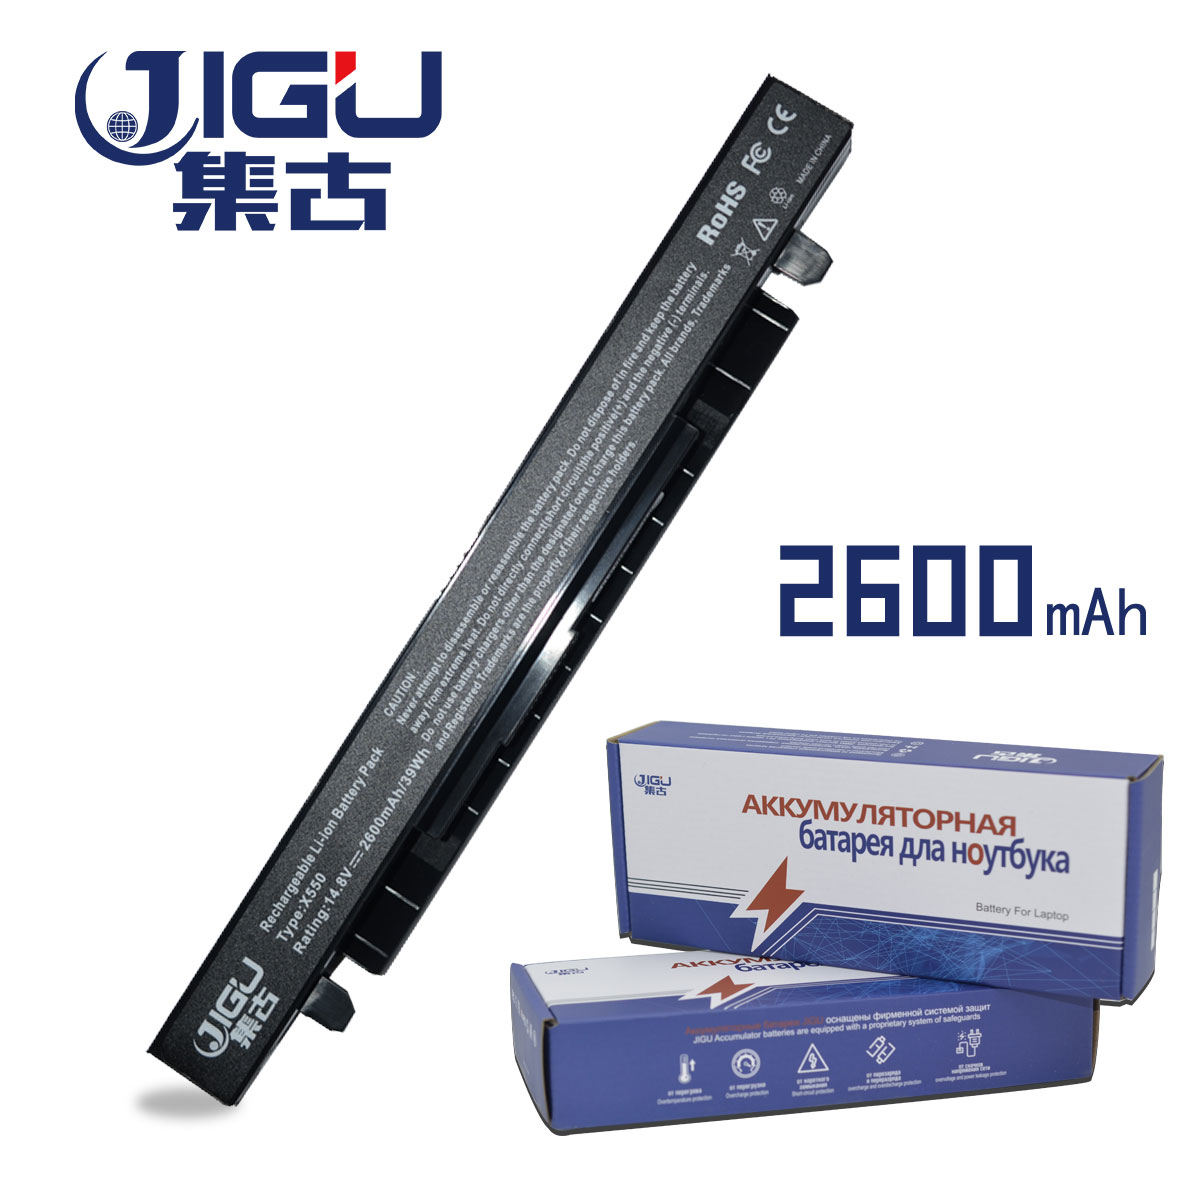 JIGU Battery For Asus A41-X550 A41-X550A A450 A550 F450 F550 F552 K550 P450 P550 R409 R510 X450 X550 X550C X550A X550CA acosound s410 digital hearing aid mini invisible in the ear hearing aids best sound amplifier adjustable cic ear aids